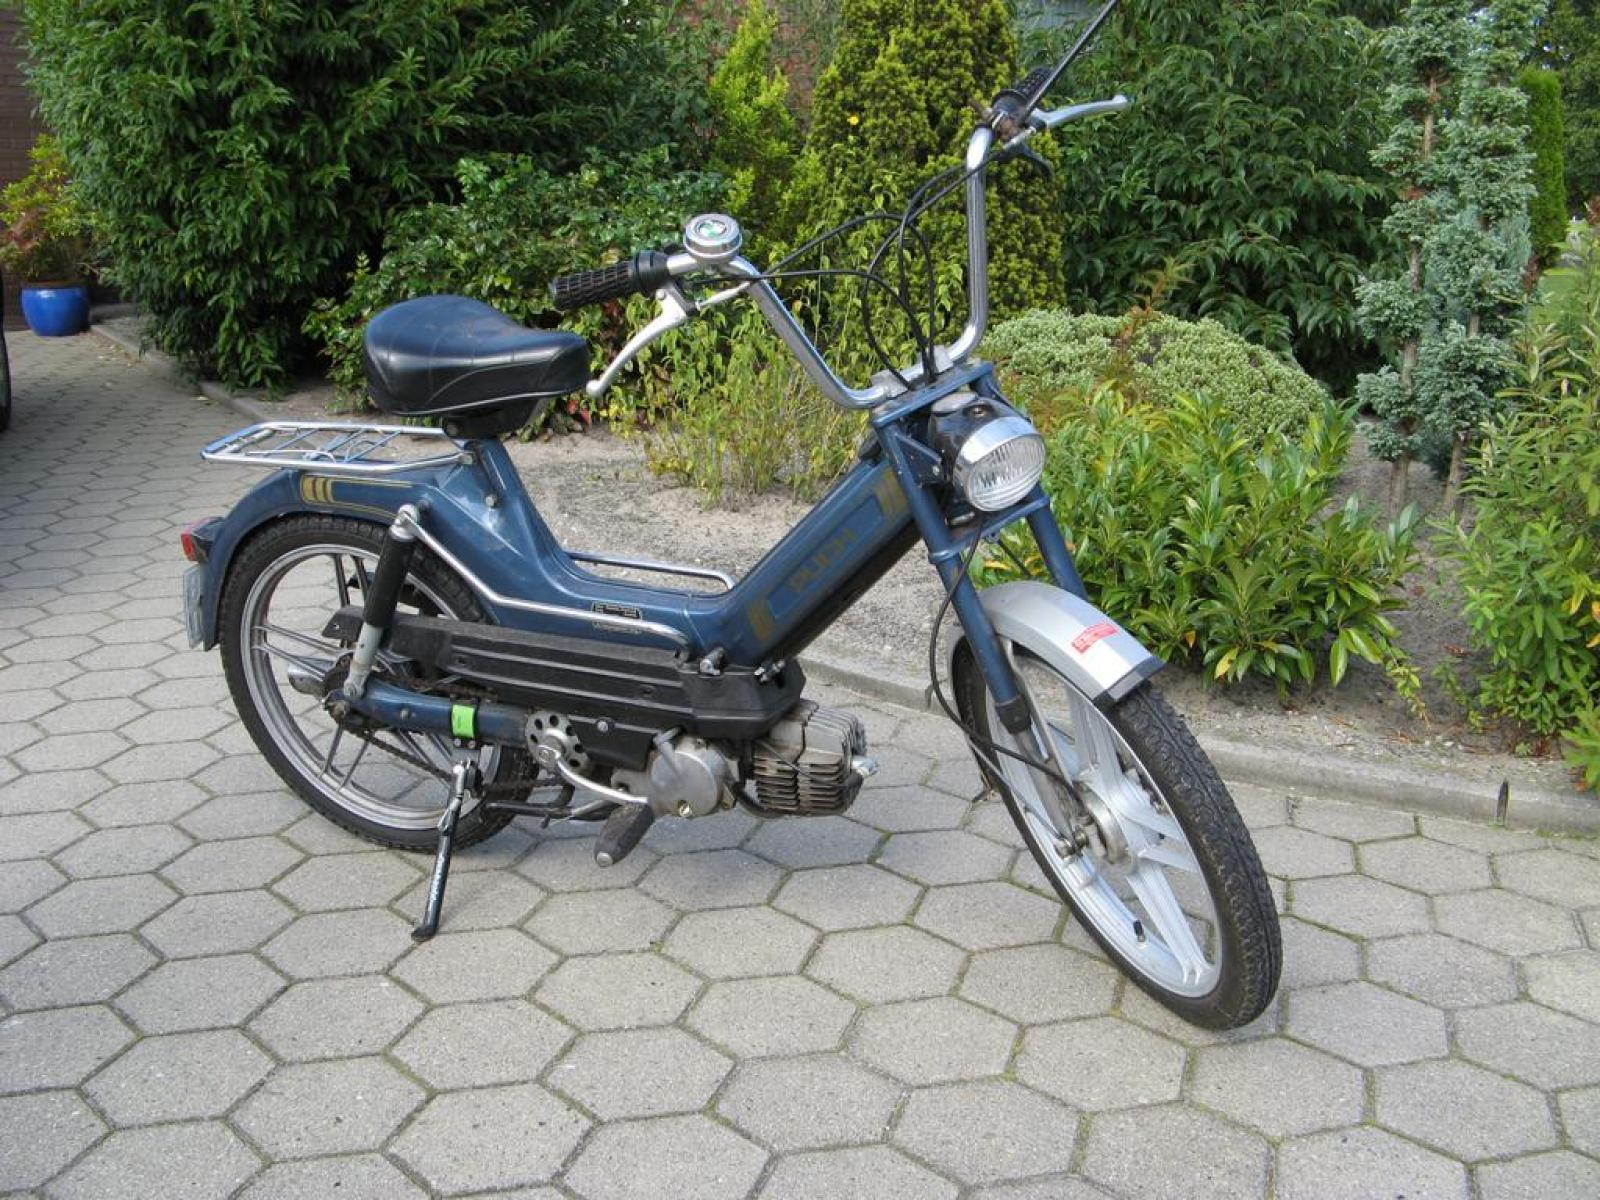 Puch GS 350 F 5 1985 images #121612